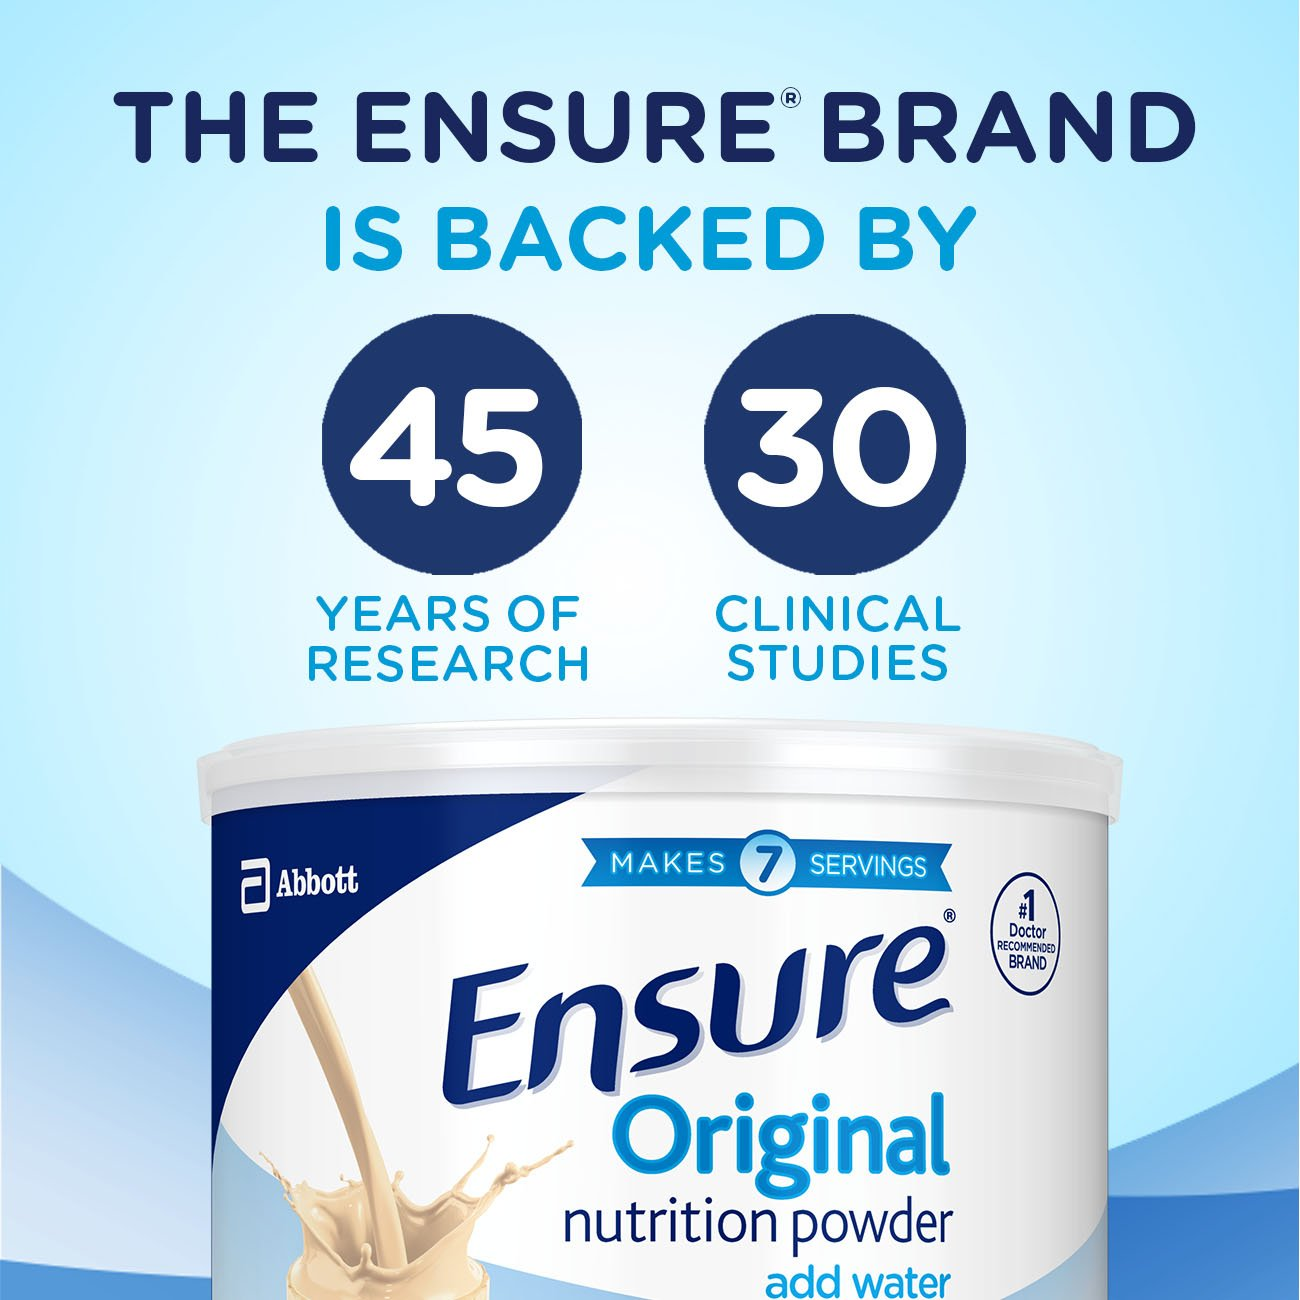 Ensure Original Nutrition Powder with 8 grams of protein, Meal Replacement, Vanilla, 6 count by Ensure (Image #9)